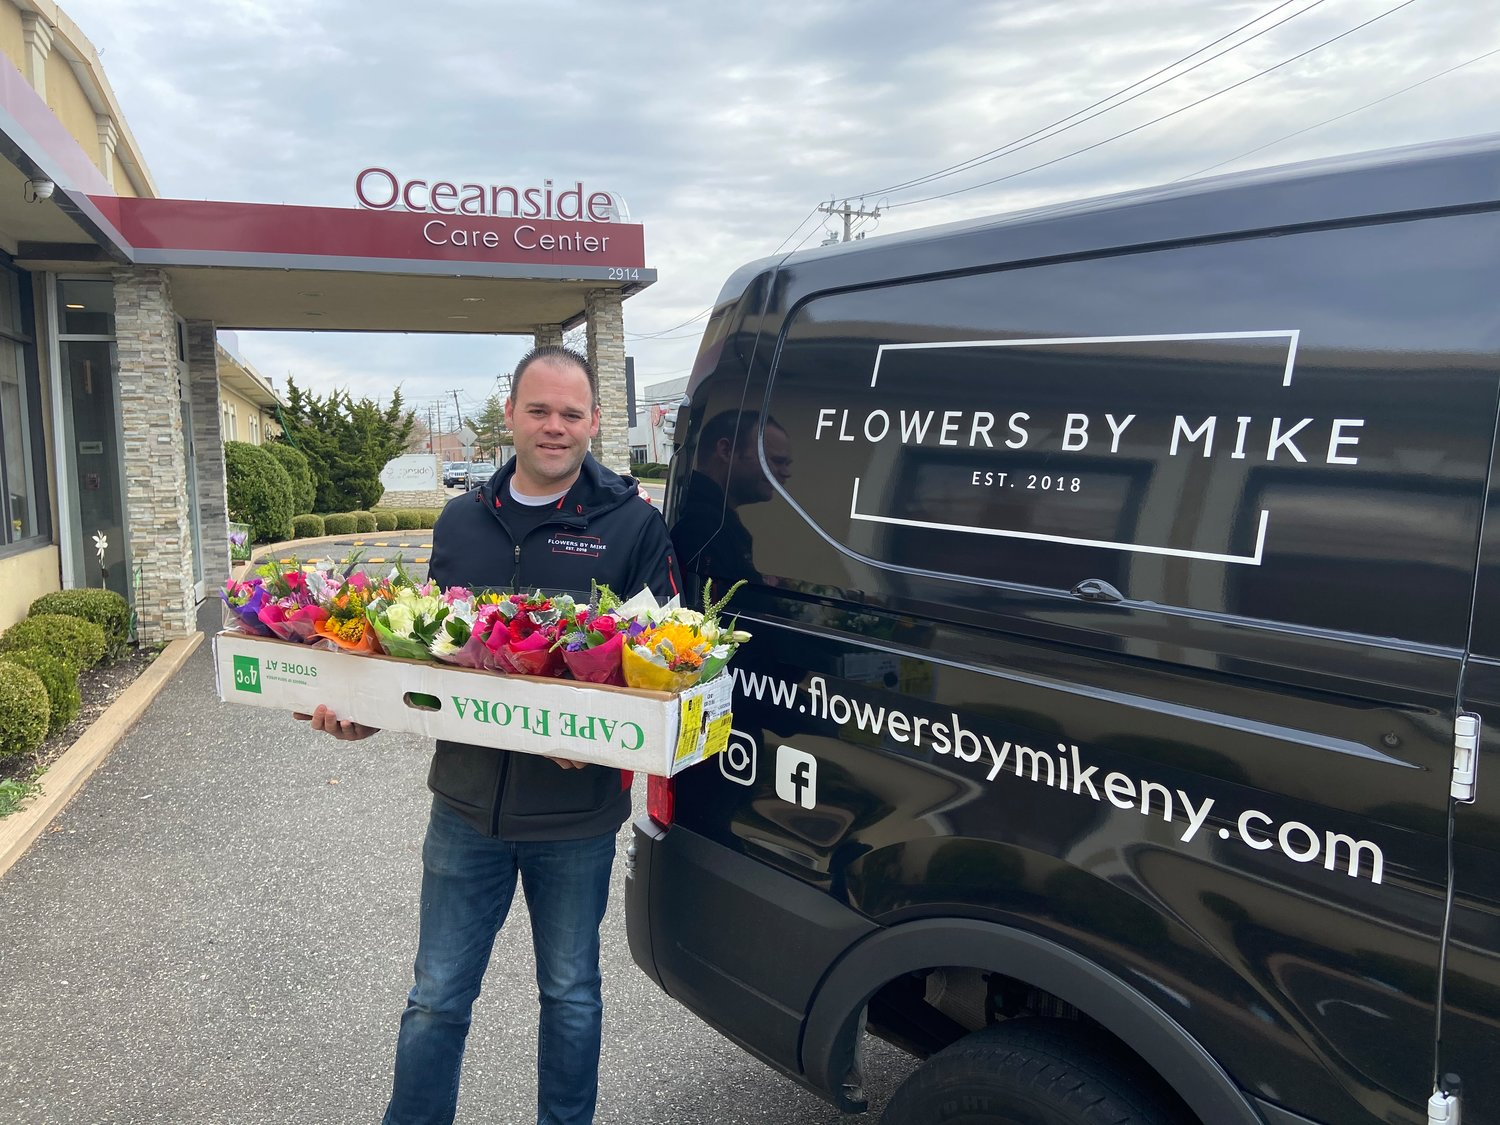 Flowers by Mike owner Mike Graham donated arrangements throughout the neighborhood, including at the Oceanside Care Center, after having to shutdown his businesses as of March 22 because of the coronavirus